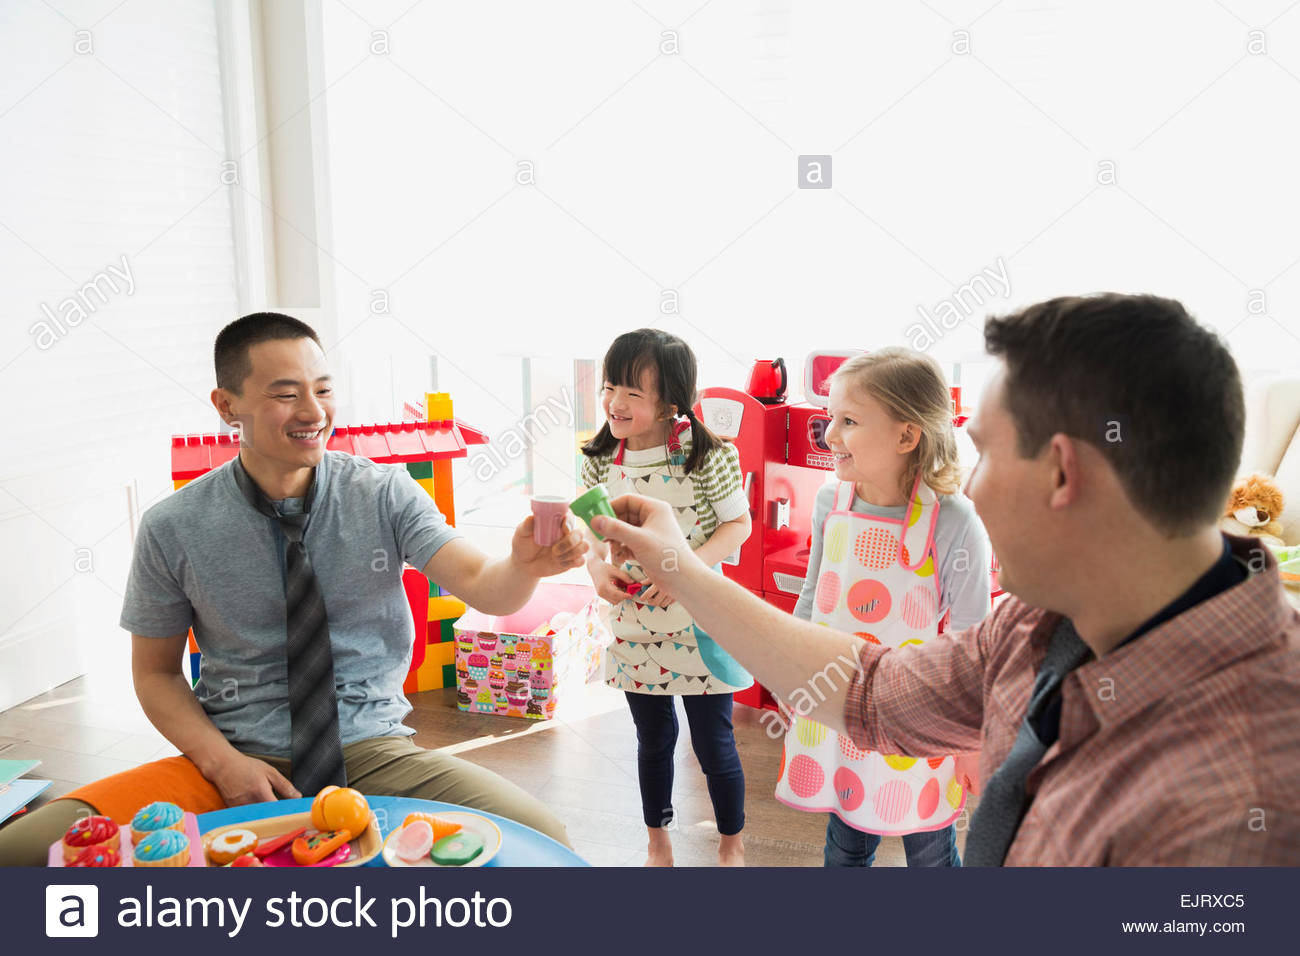 Fathers and daughters playing pretend restaurant - Stock Image